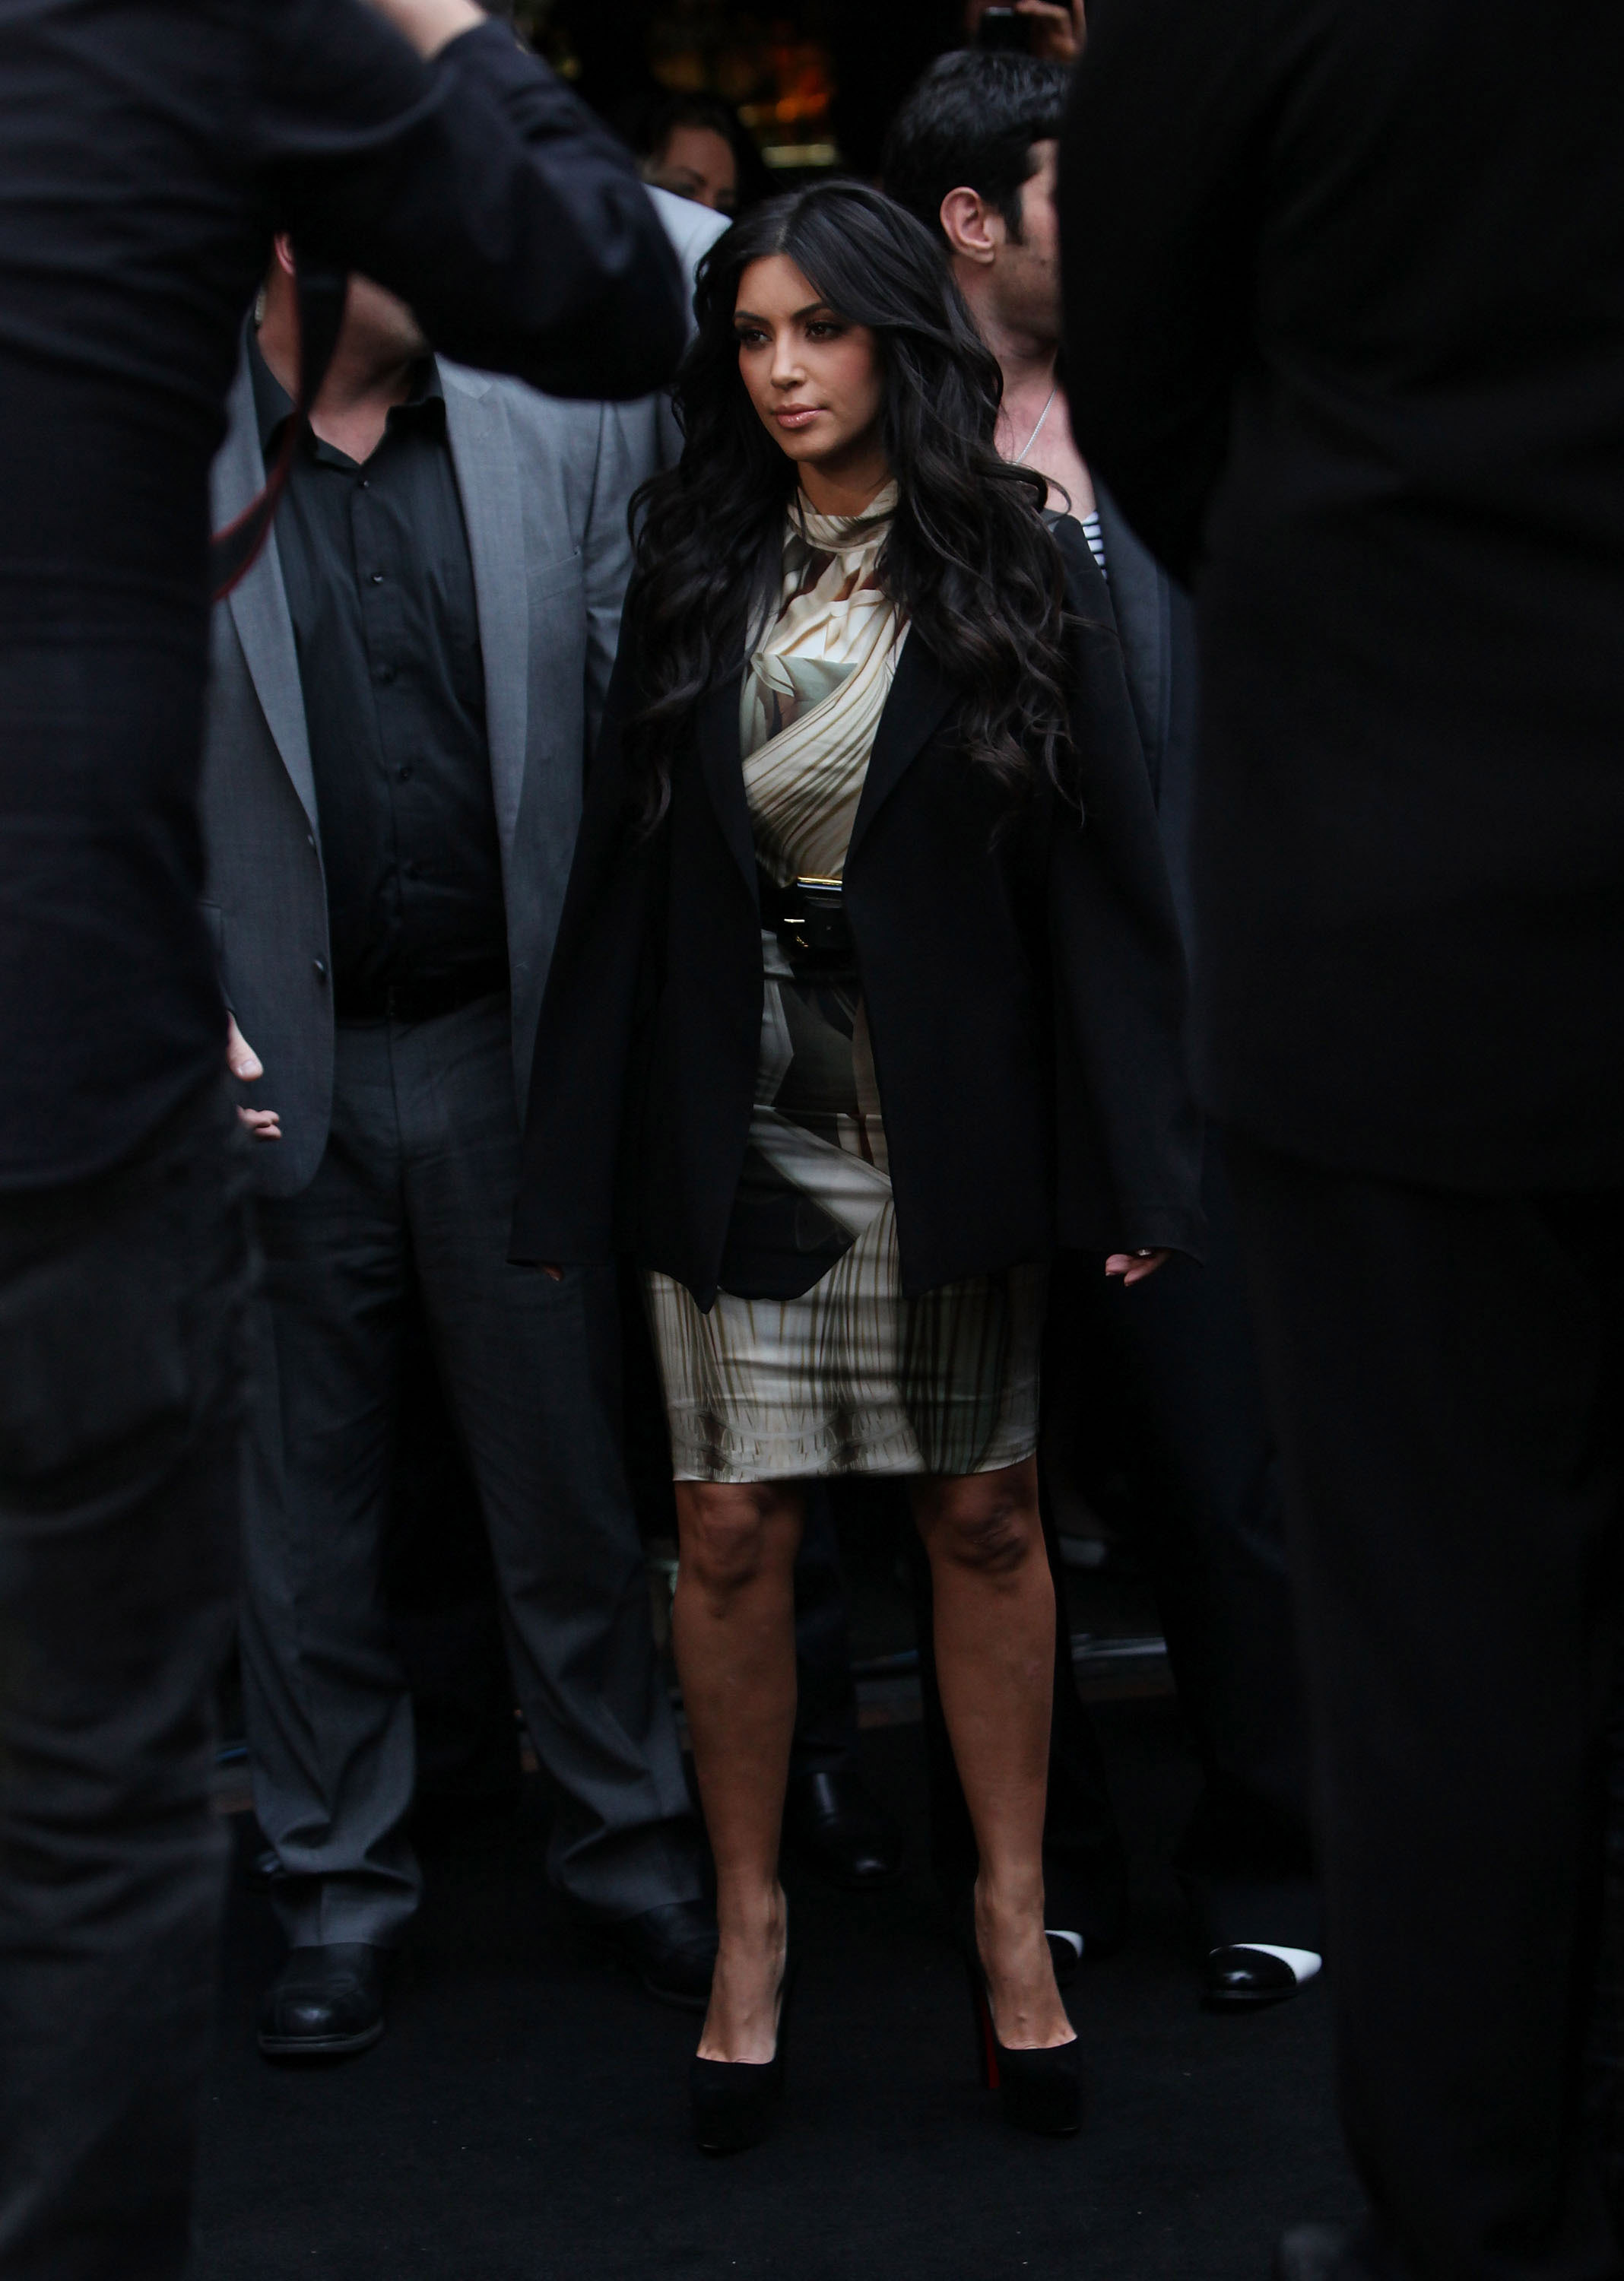 Kim Kardashian paused for photographers in Sydney.